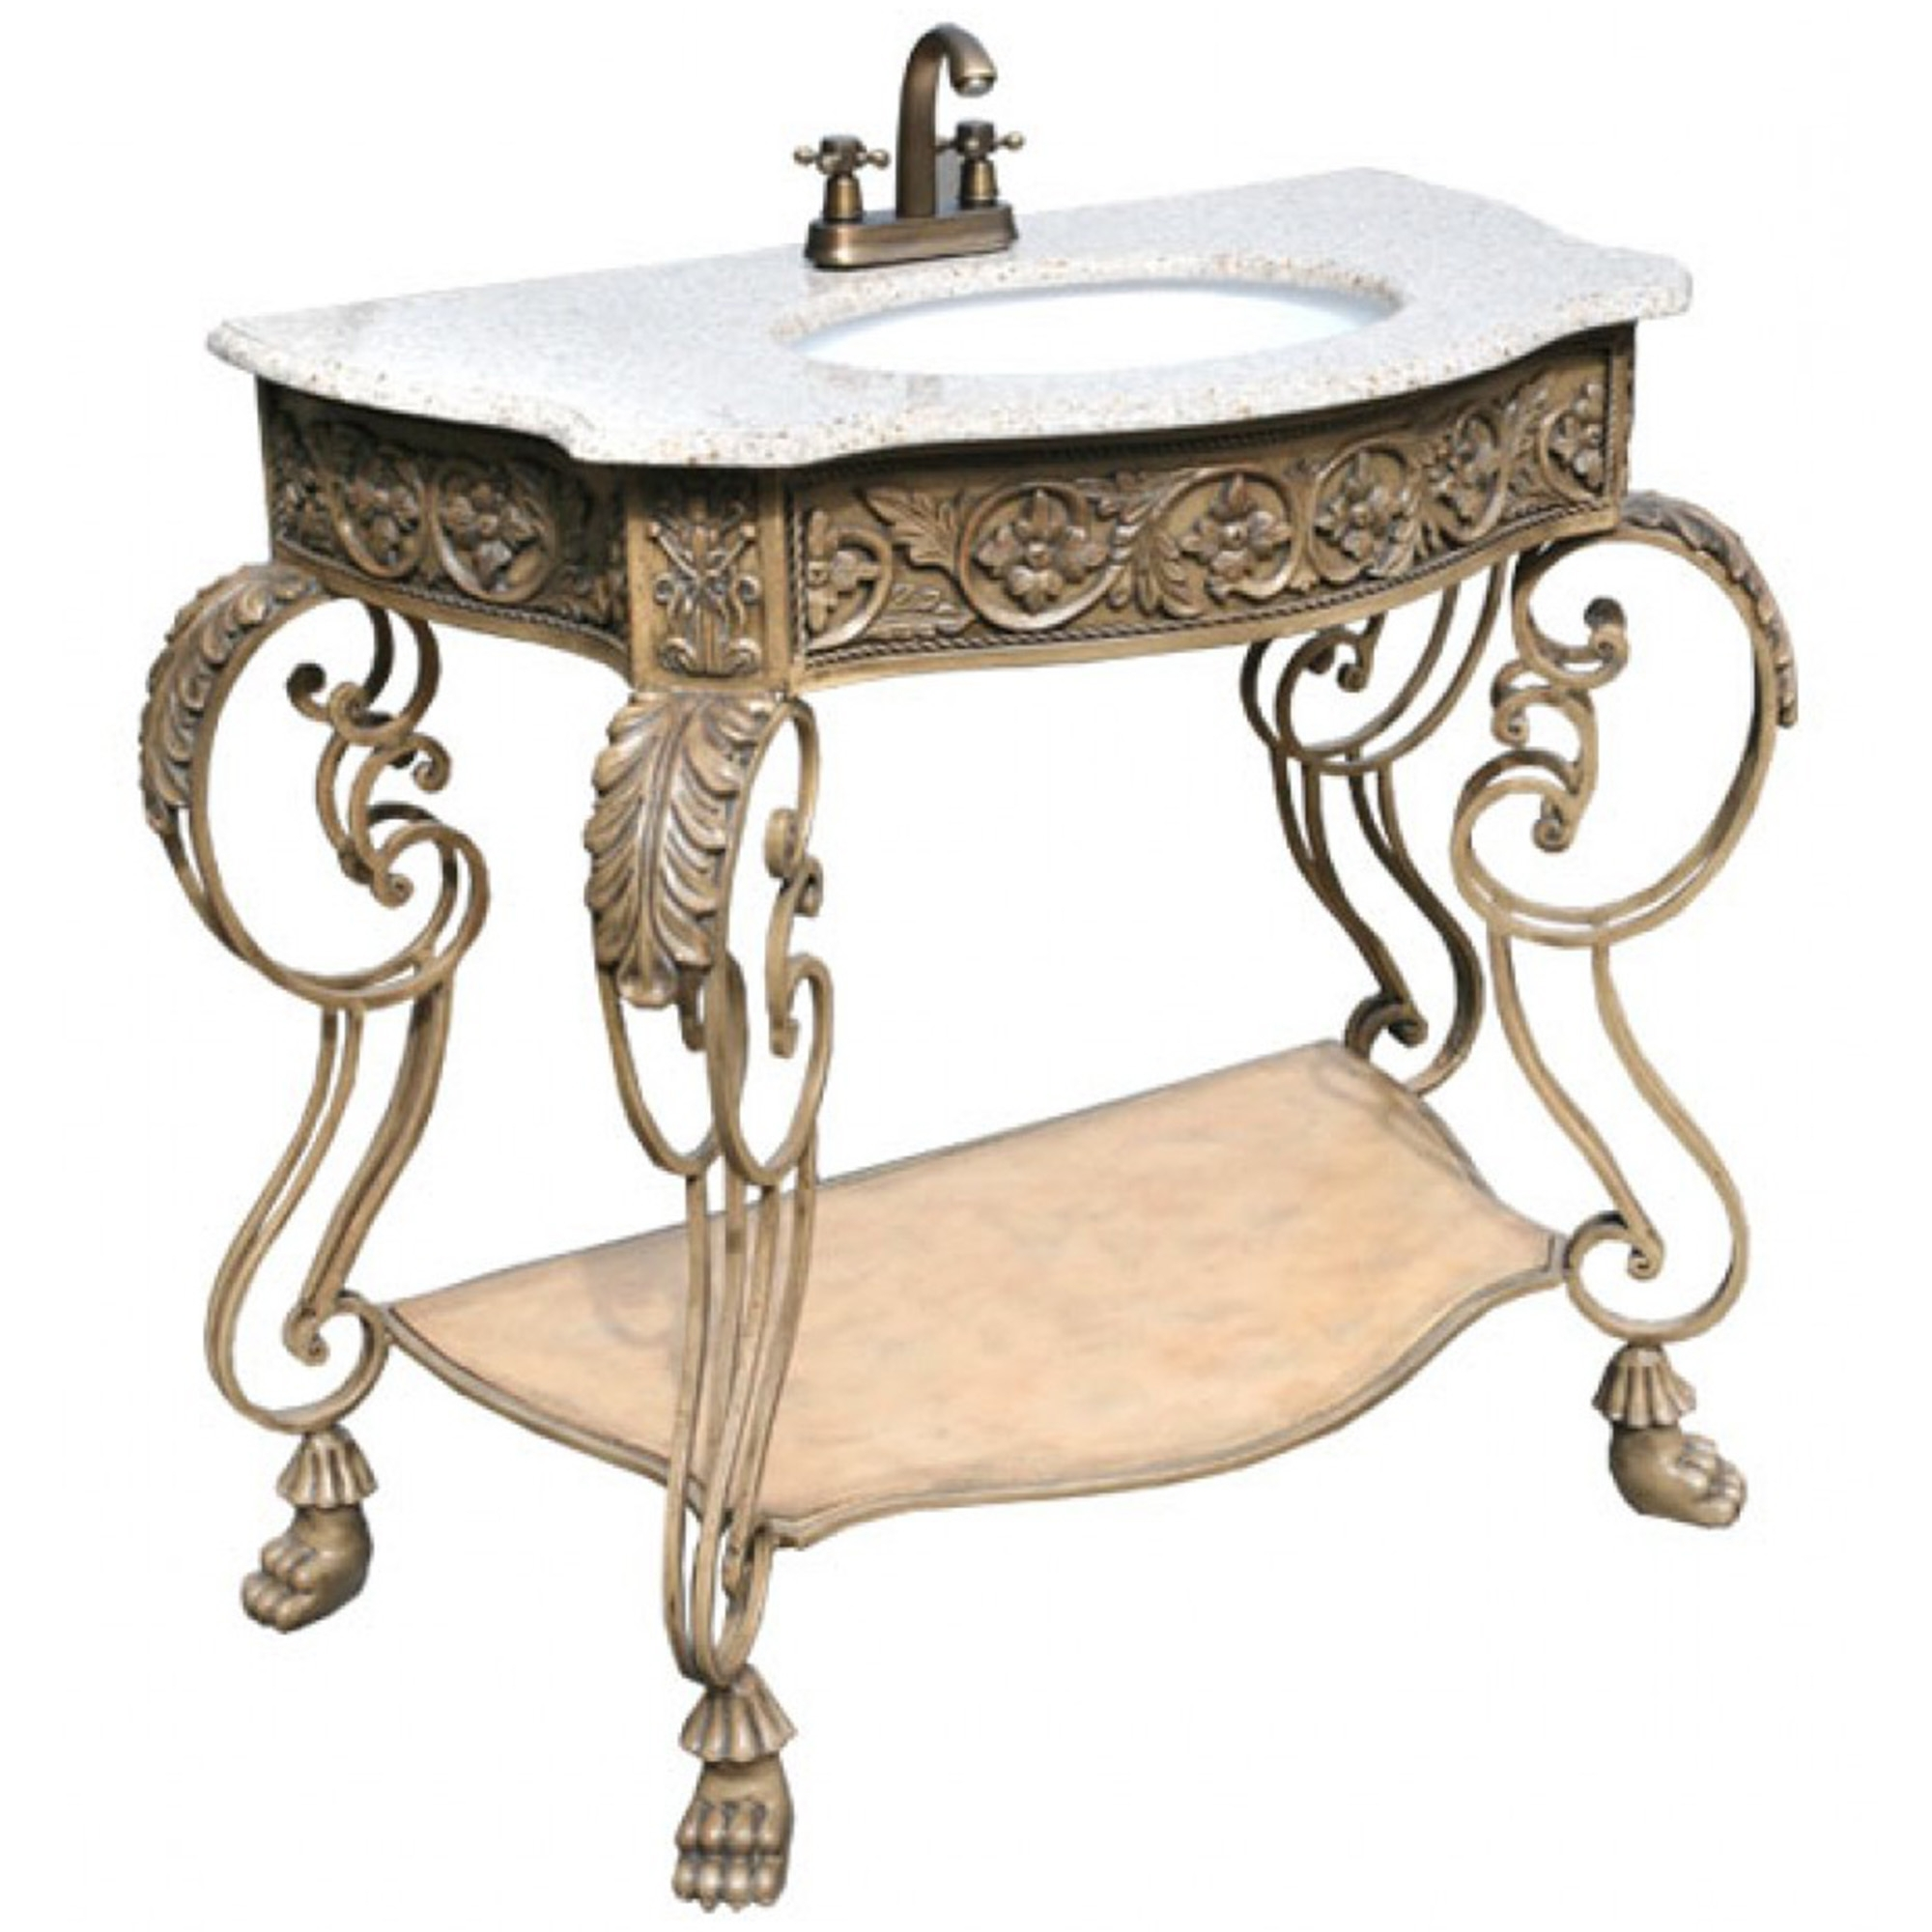 Iron Antique French Style Vanity Unit Bathroom Furniture